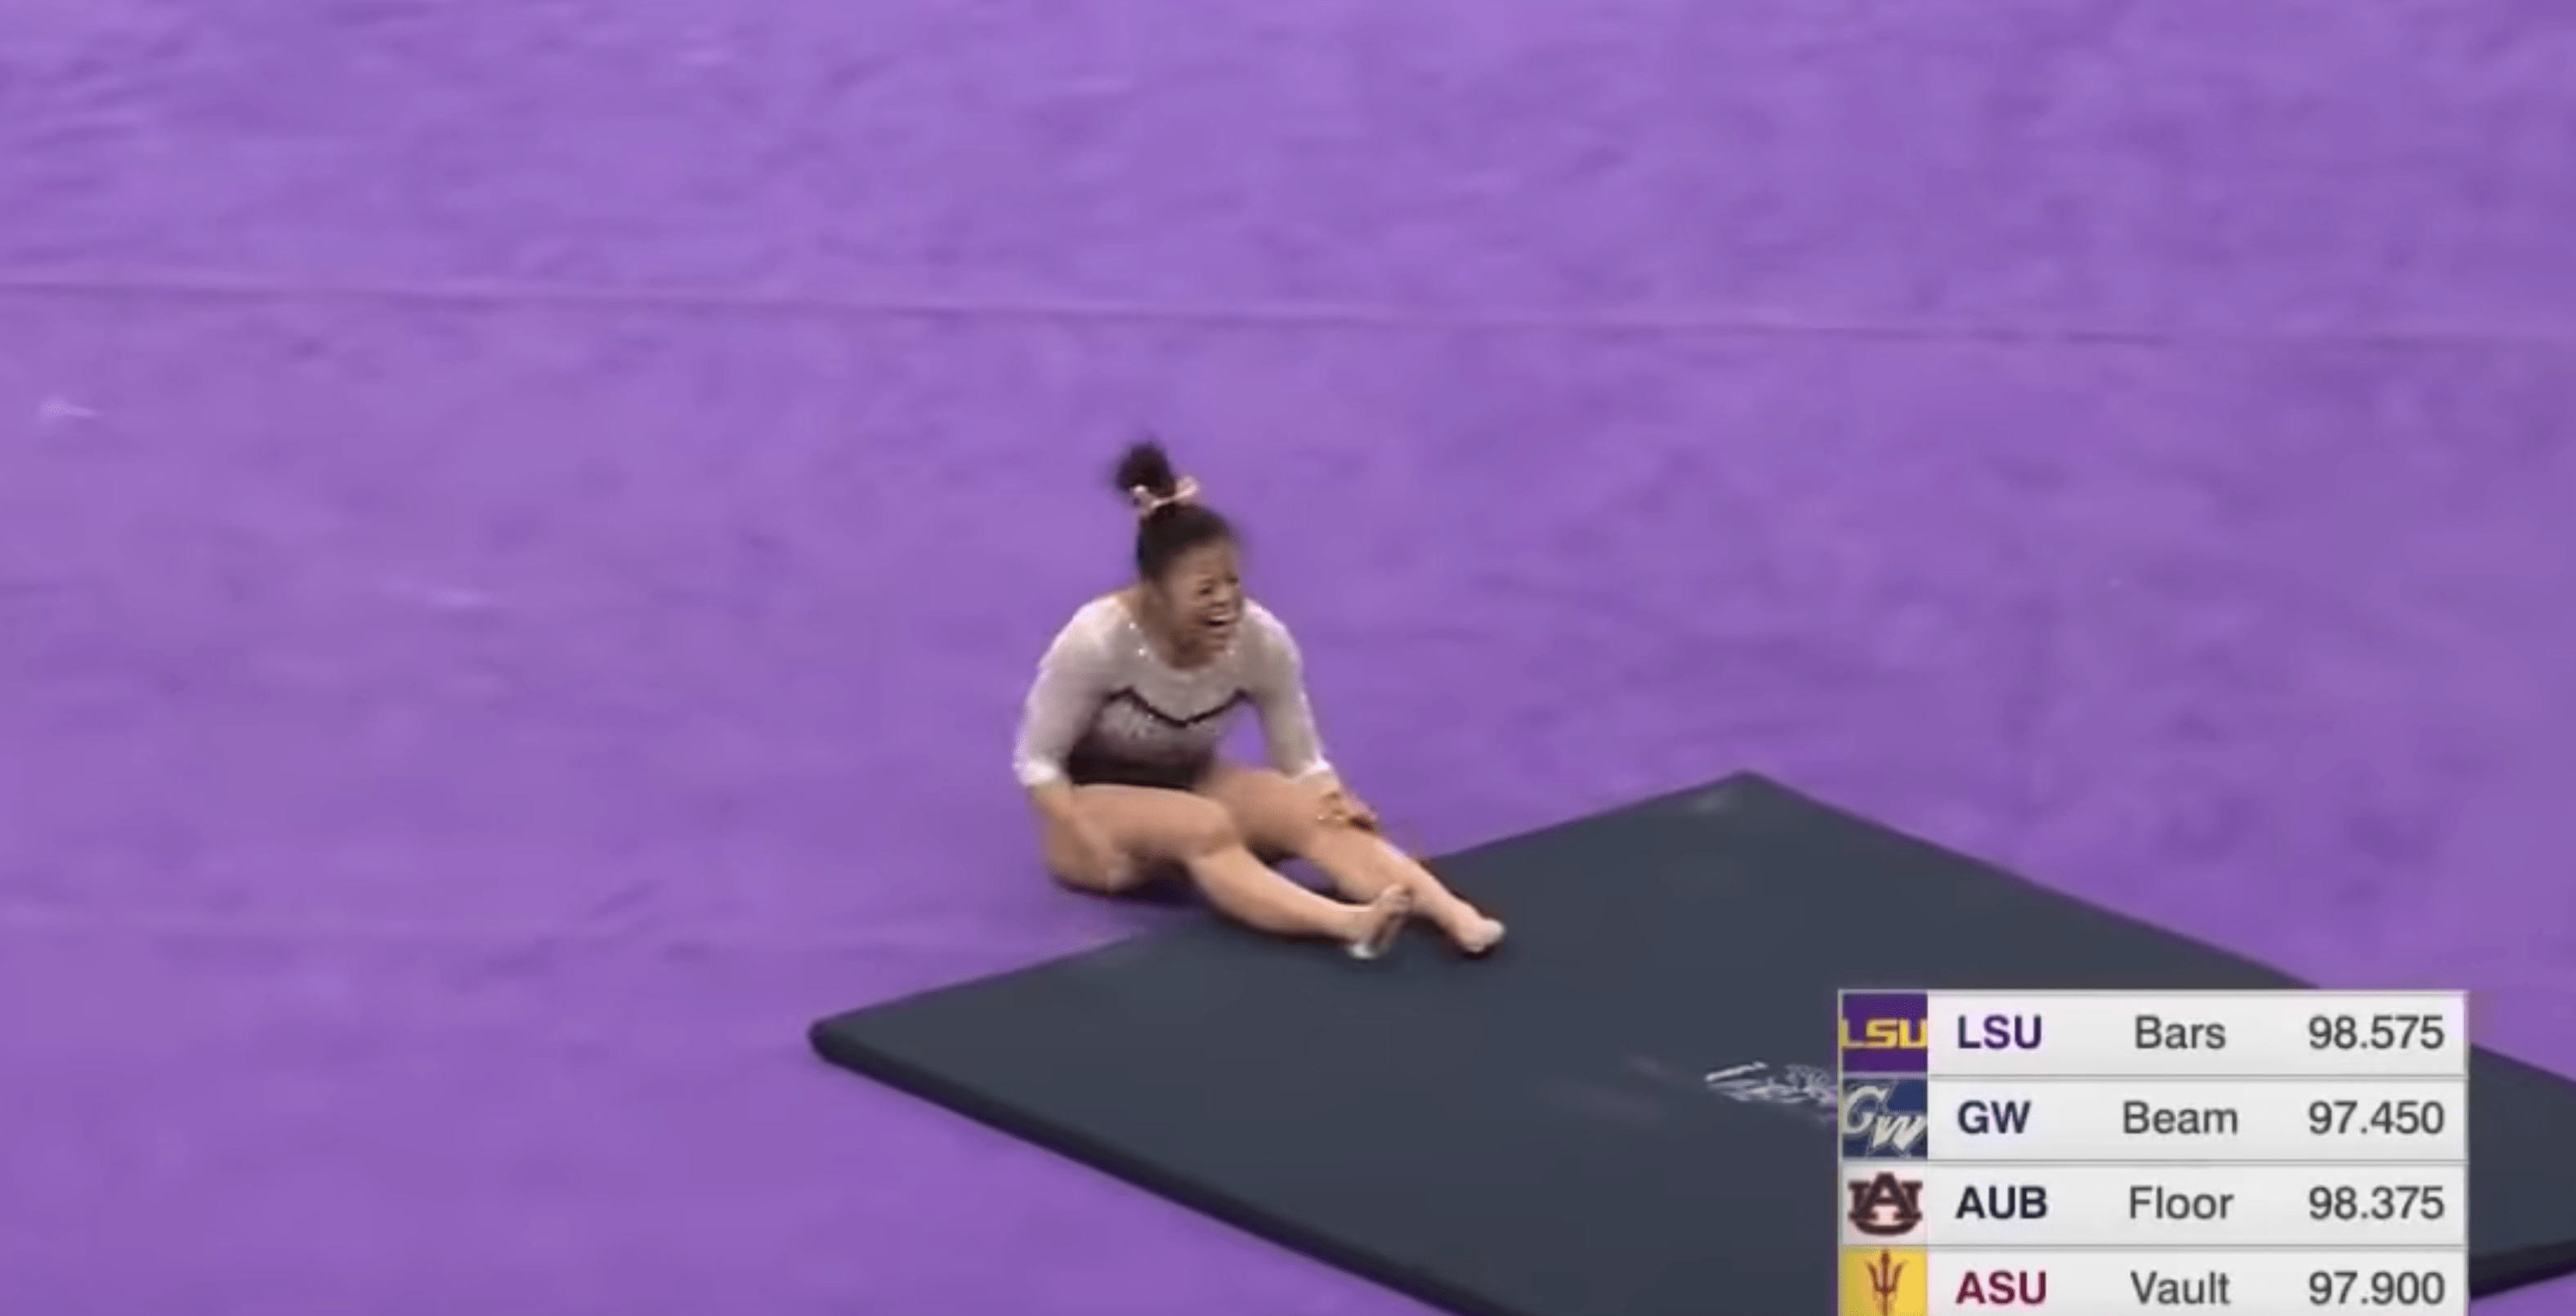 Gymnast Sam Cerio attempted a handspring double front flip - but fell on the landing and suffered horrific injuries to her legs